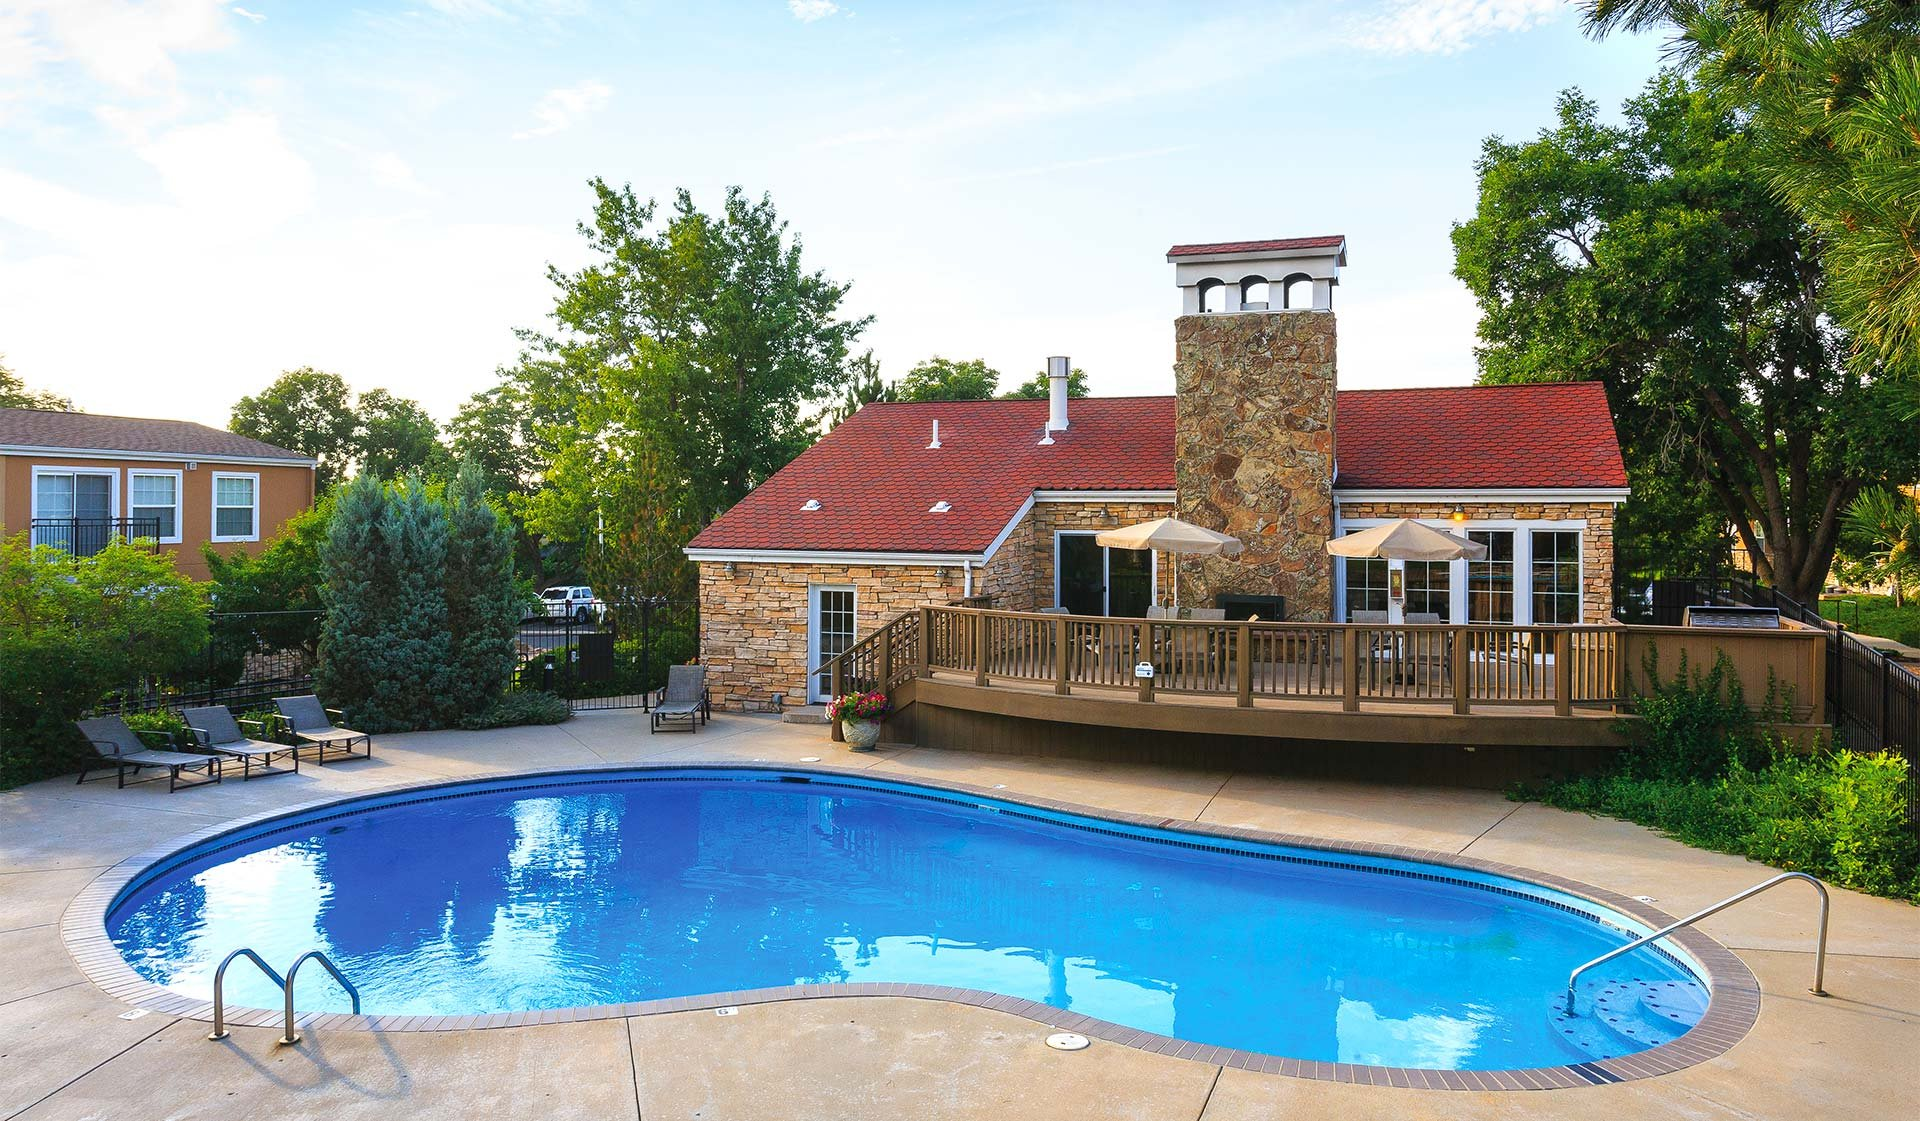 Boulder Creek Apartments in Boulder, CO - Outdoor Swimming Pool